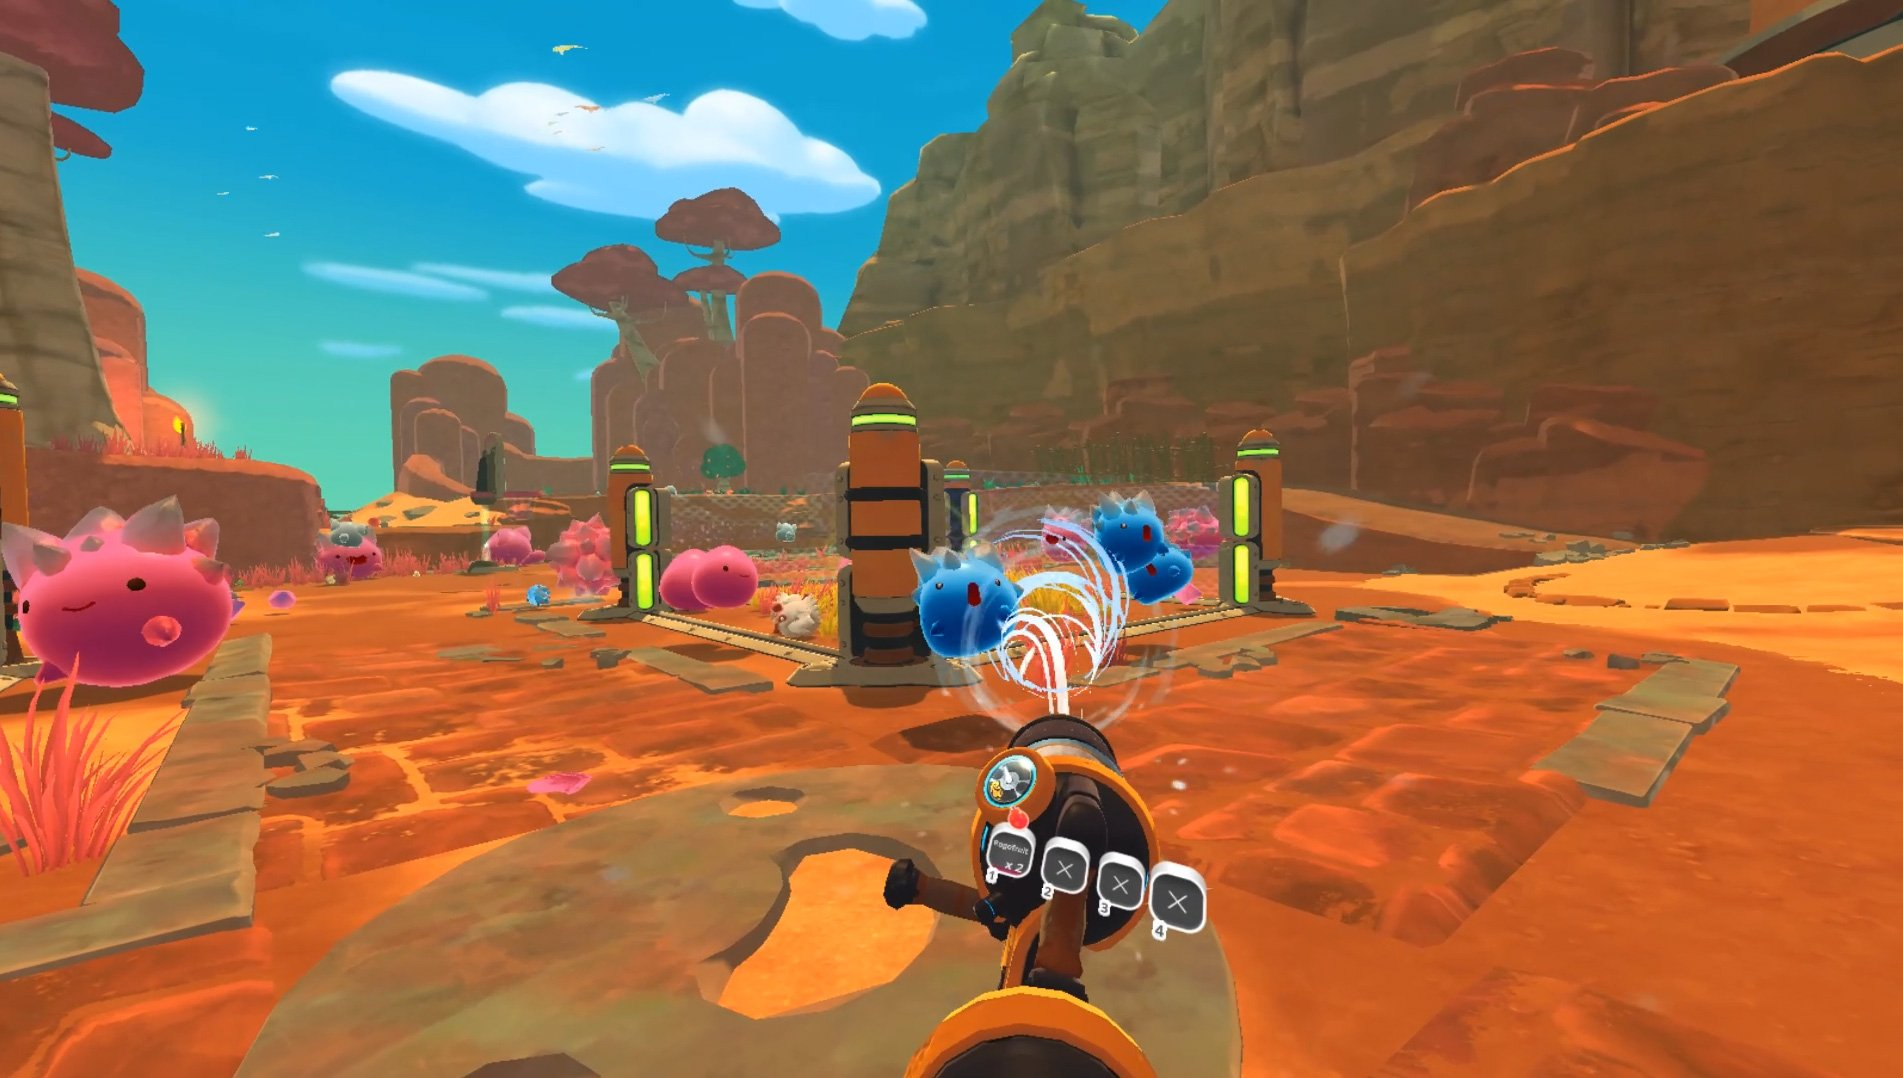 Slime Rancher is getting a free VR mode